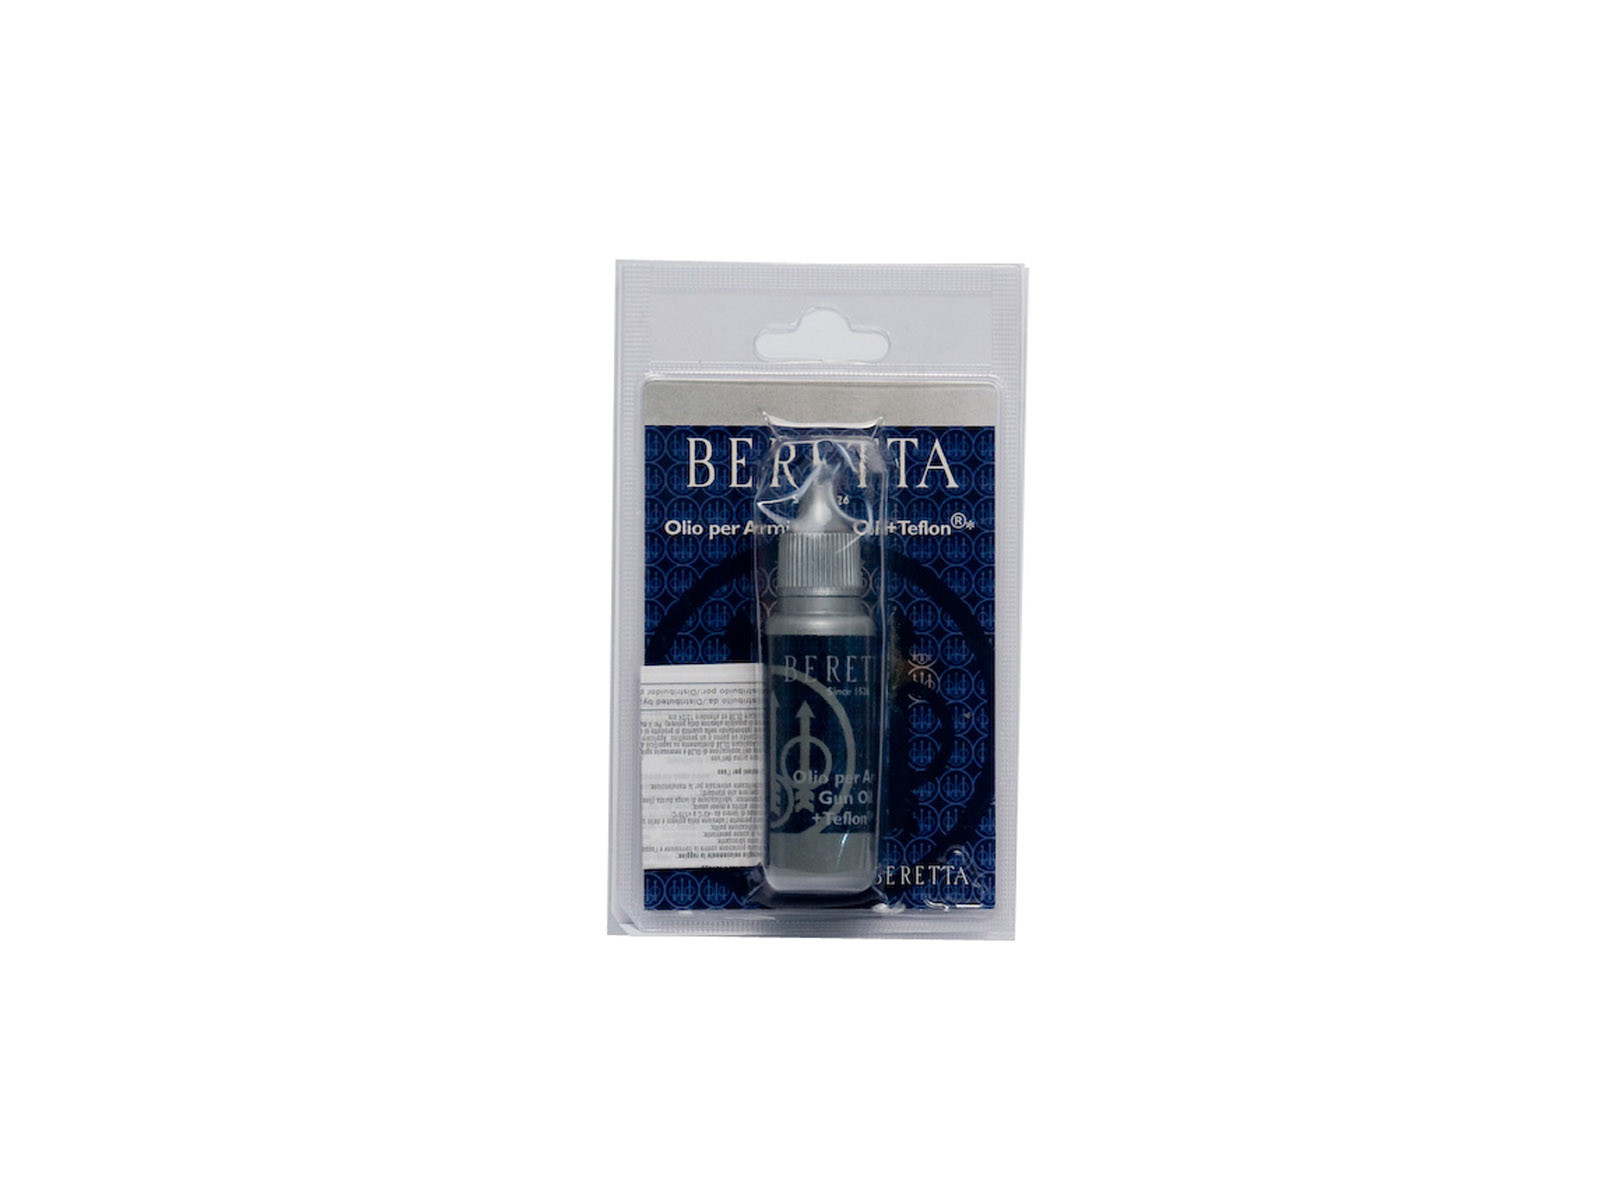 Beretta Teflon Gun Oil 25ml Tube